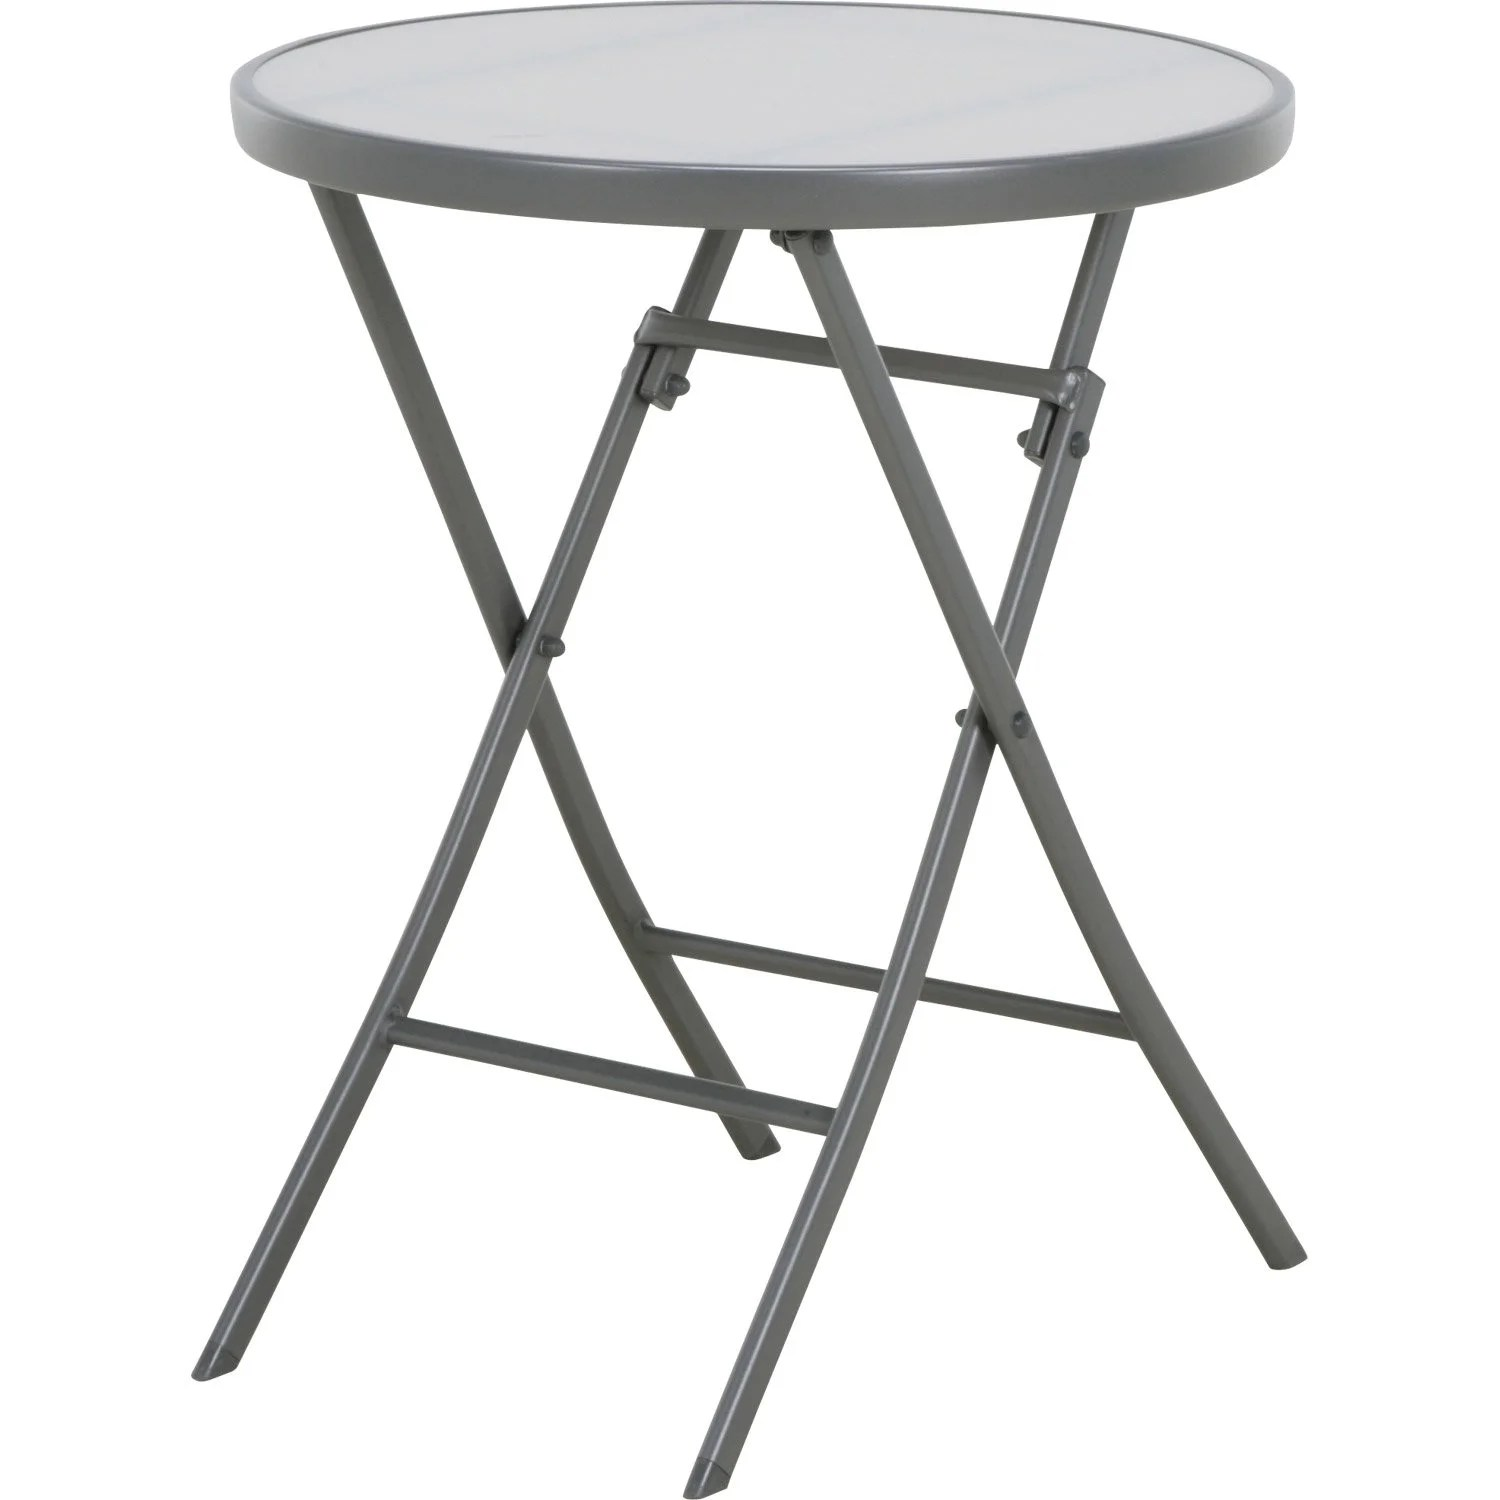 Table Pliante Camping Leroy Merlin Table De Brasserie Pliante Leroy Merlin Table De Lit